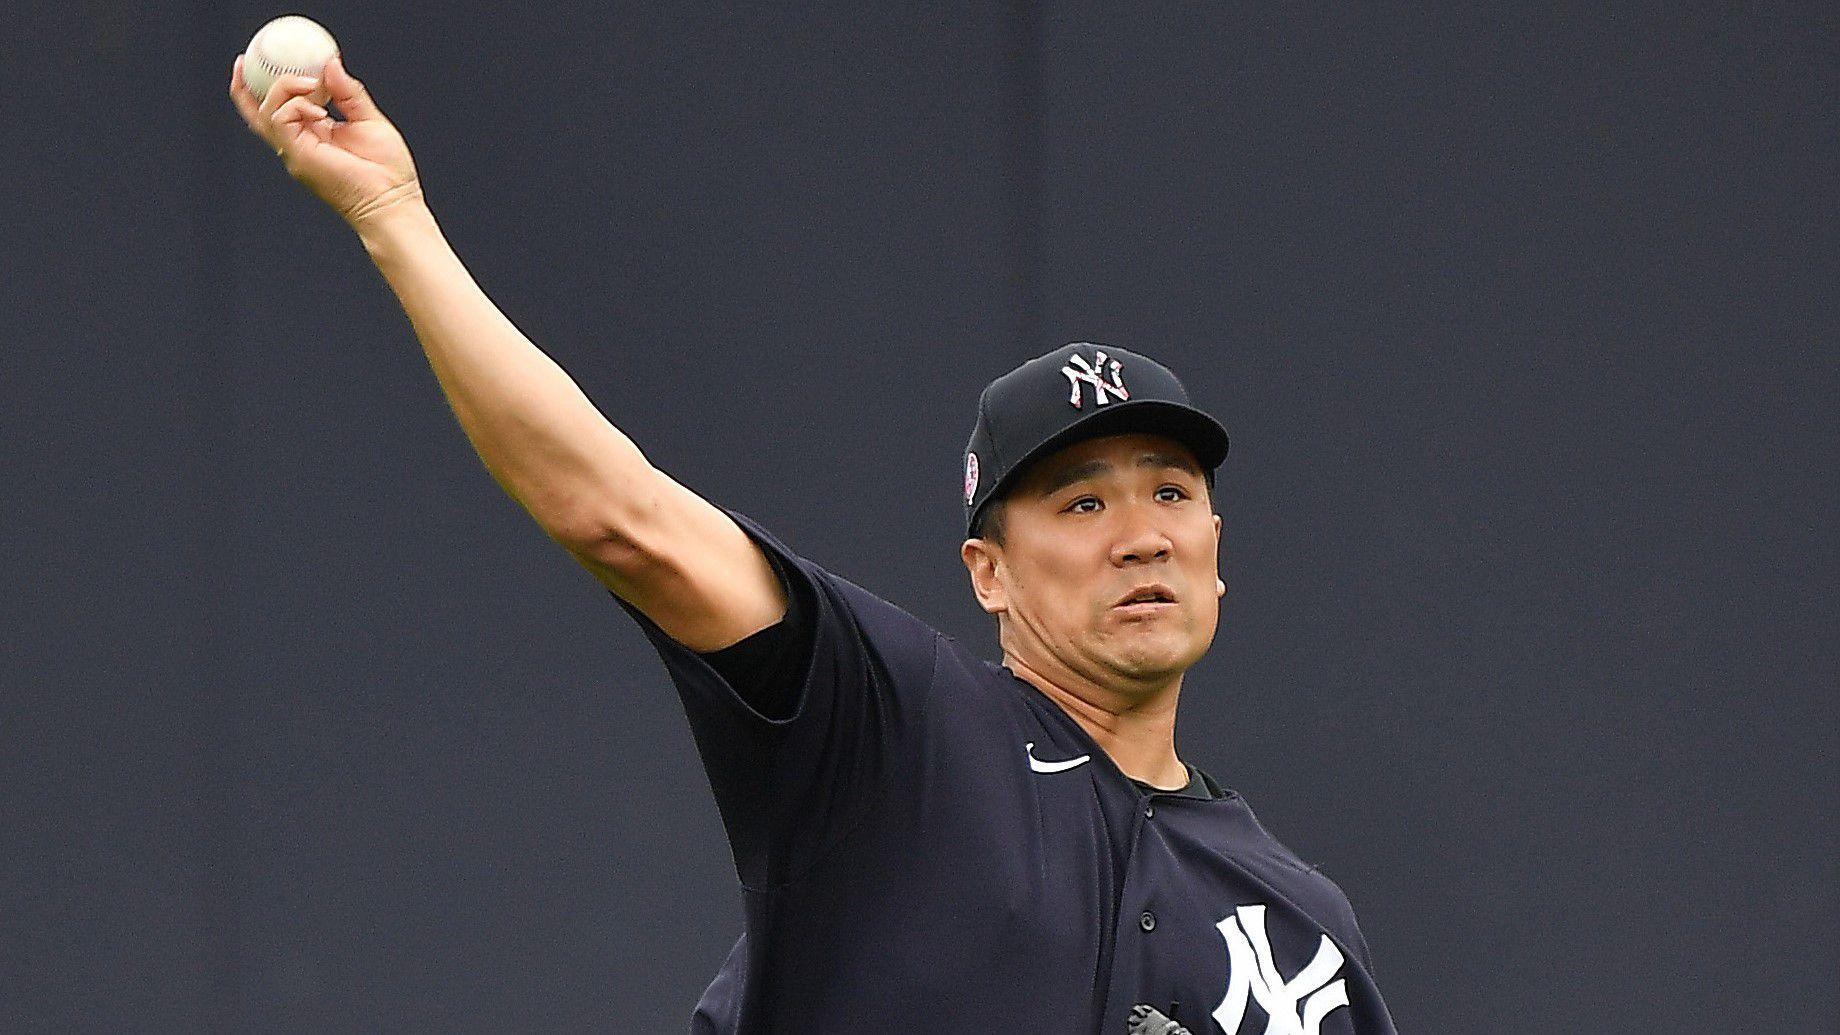 Masahiro Tanaka will wear protective padding in hat during Saturday start